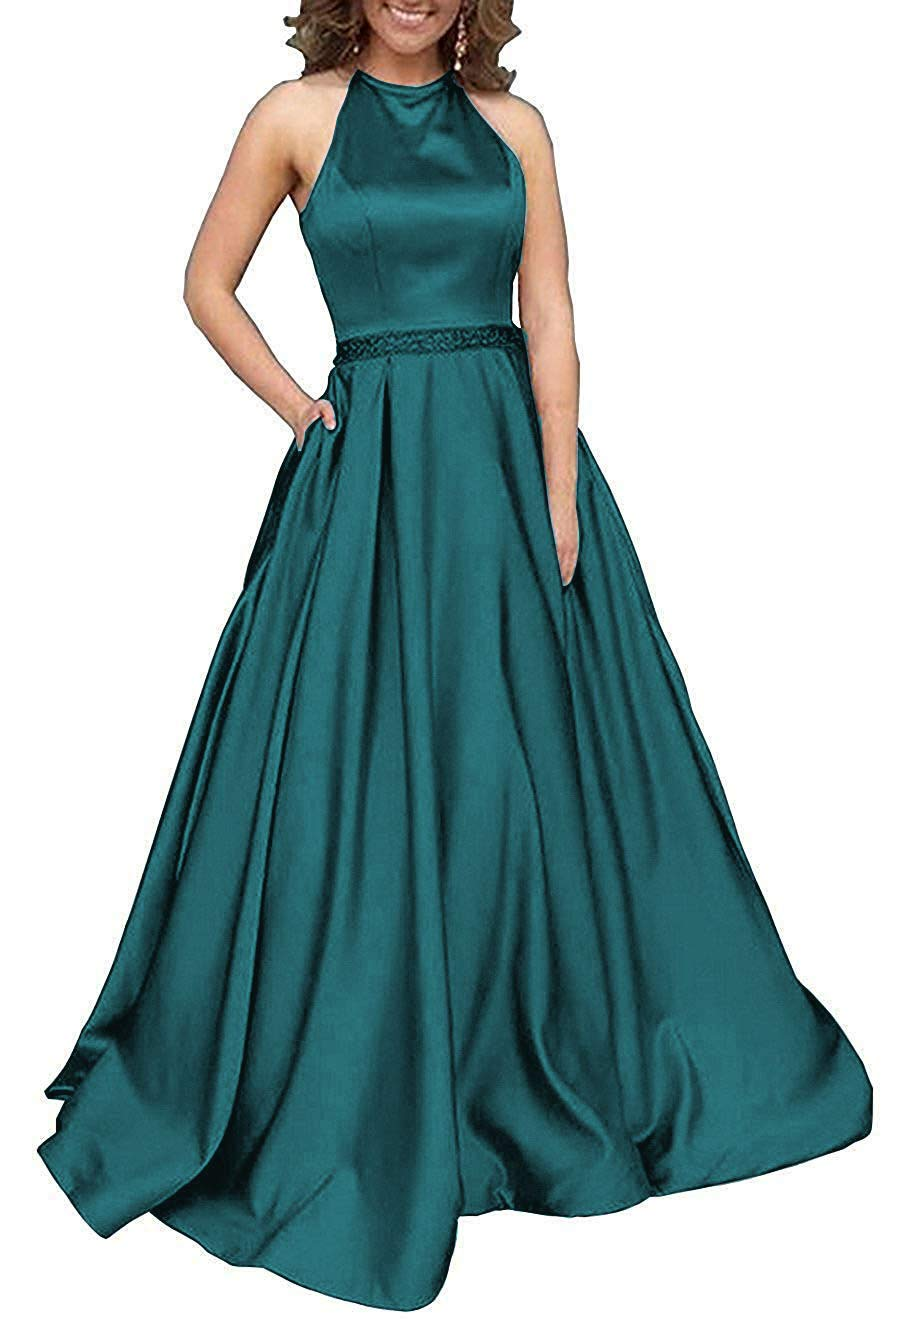 Available at Amazon: Halter Prom Dresses Long Satin Backless Beaded Evening Formal Gowns with Pockets for Women